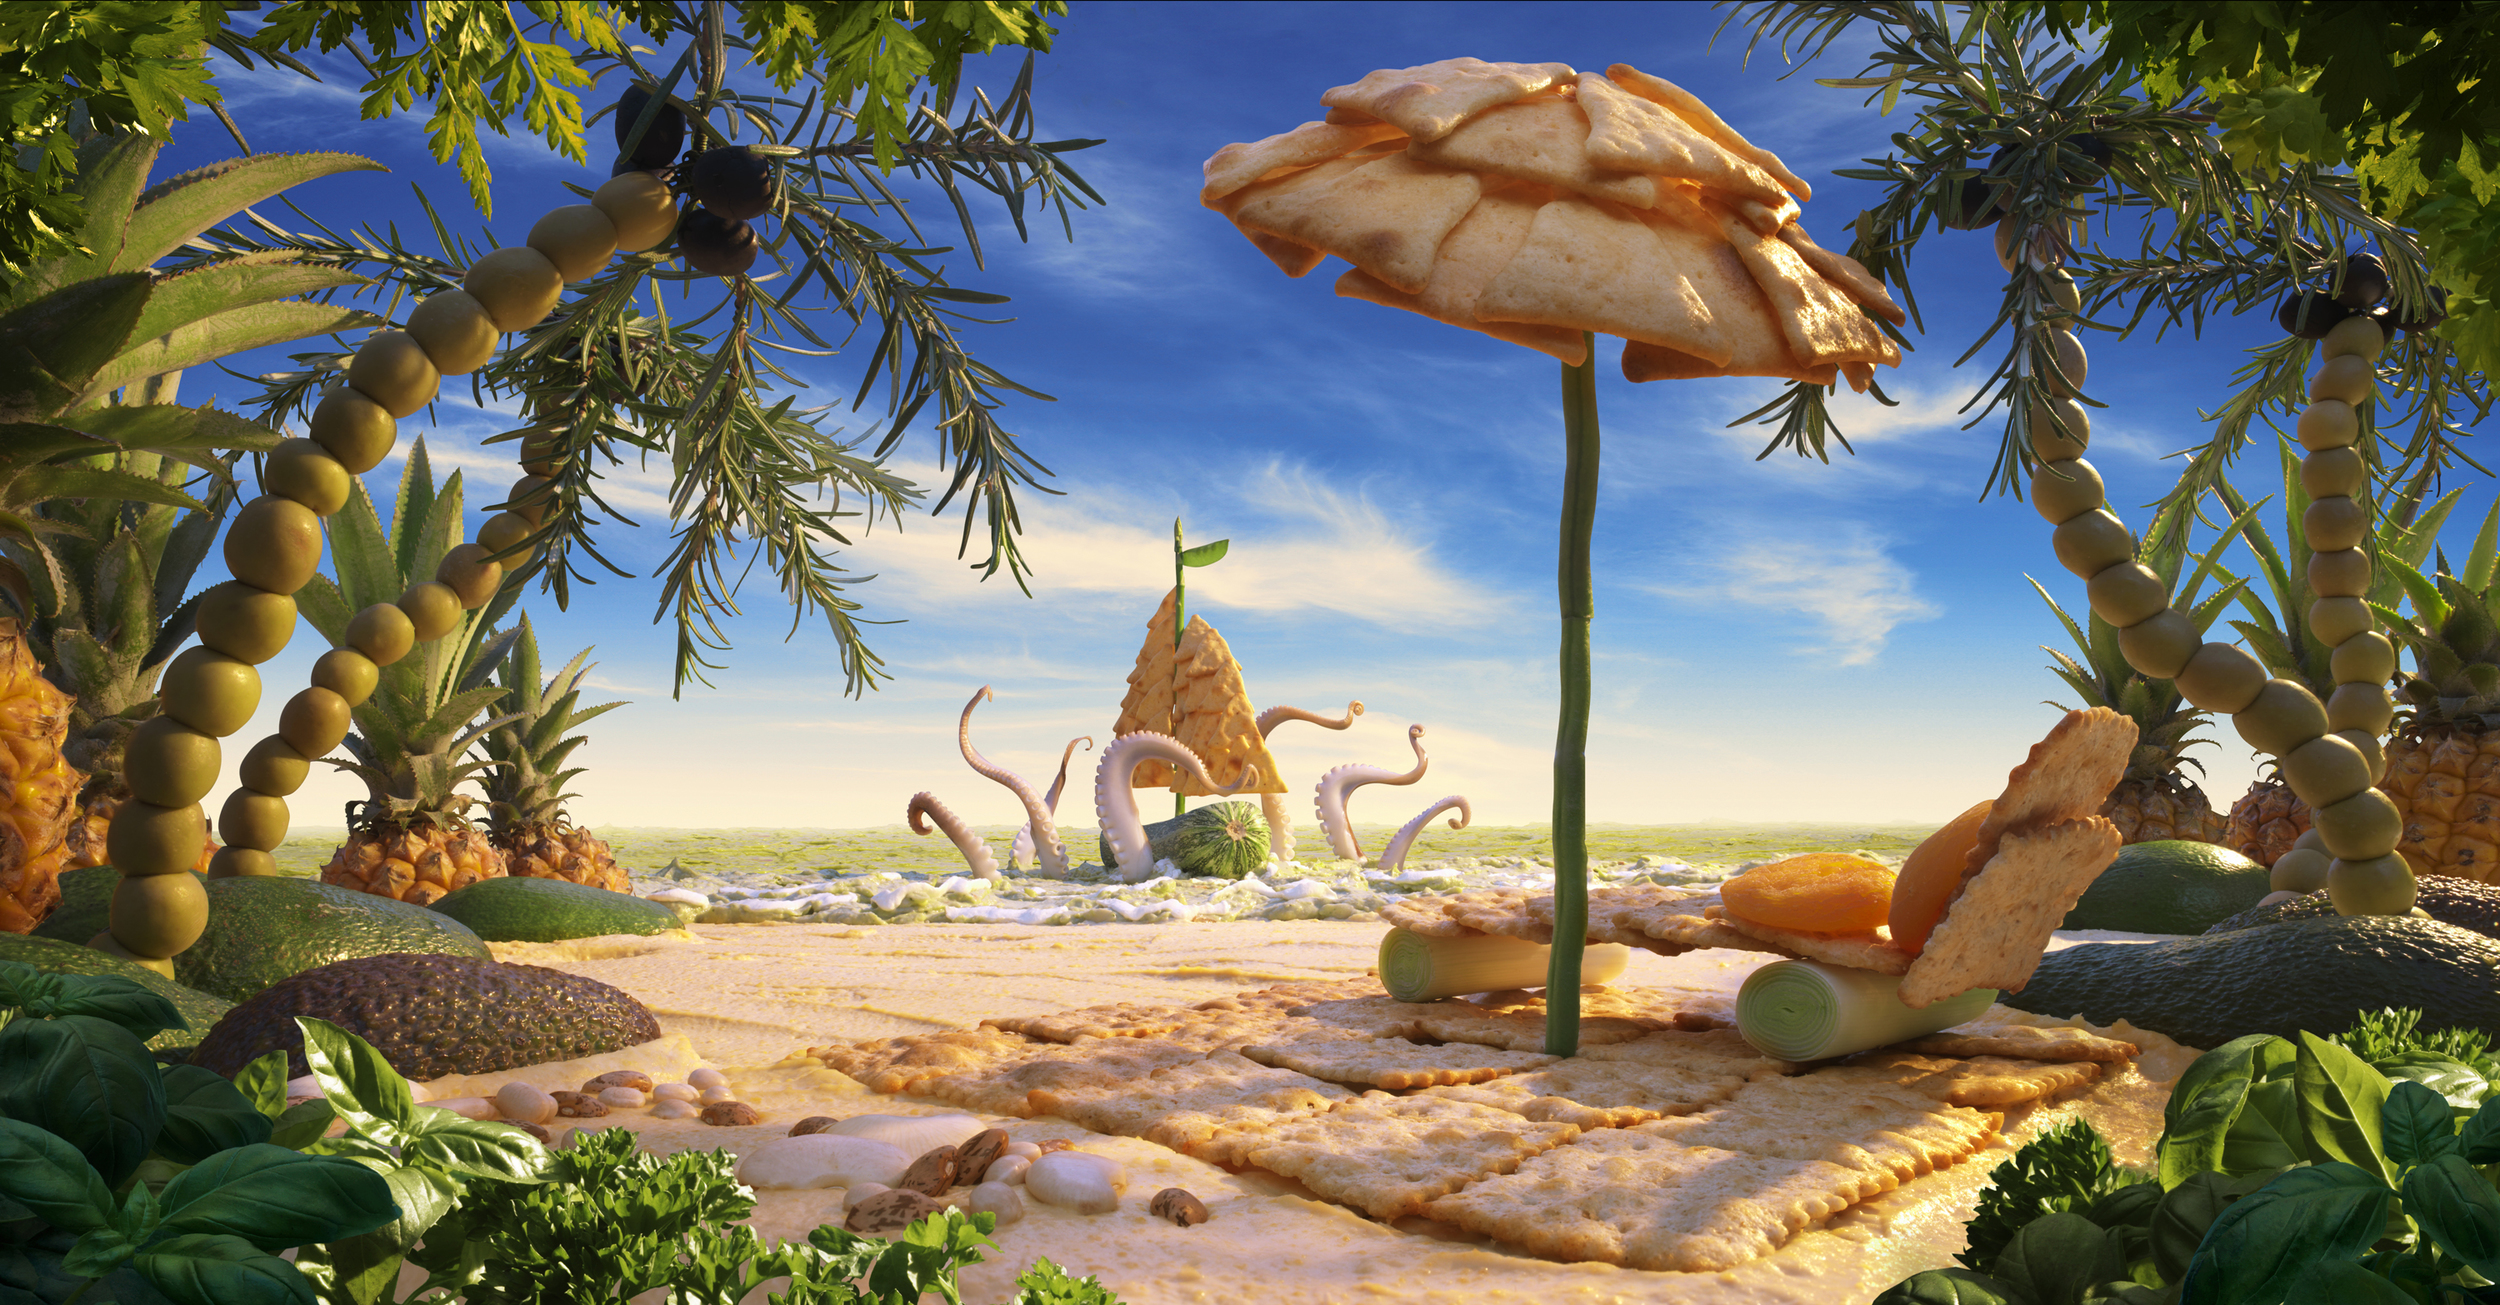 Enjoy your summer lounging on this hummus beach, but WATCH OUT FOR THAT KRAKEN!